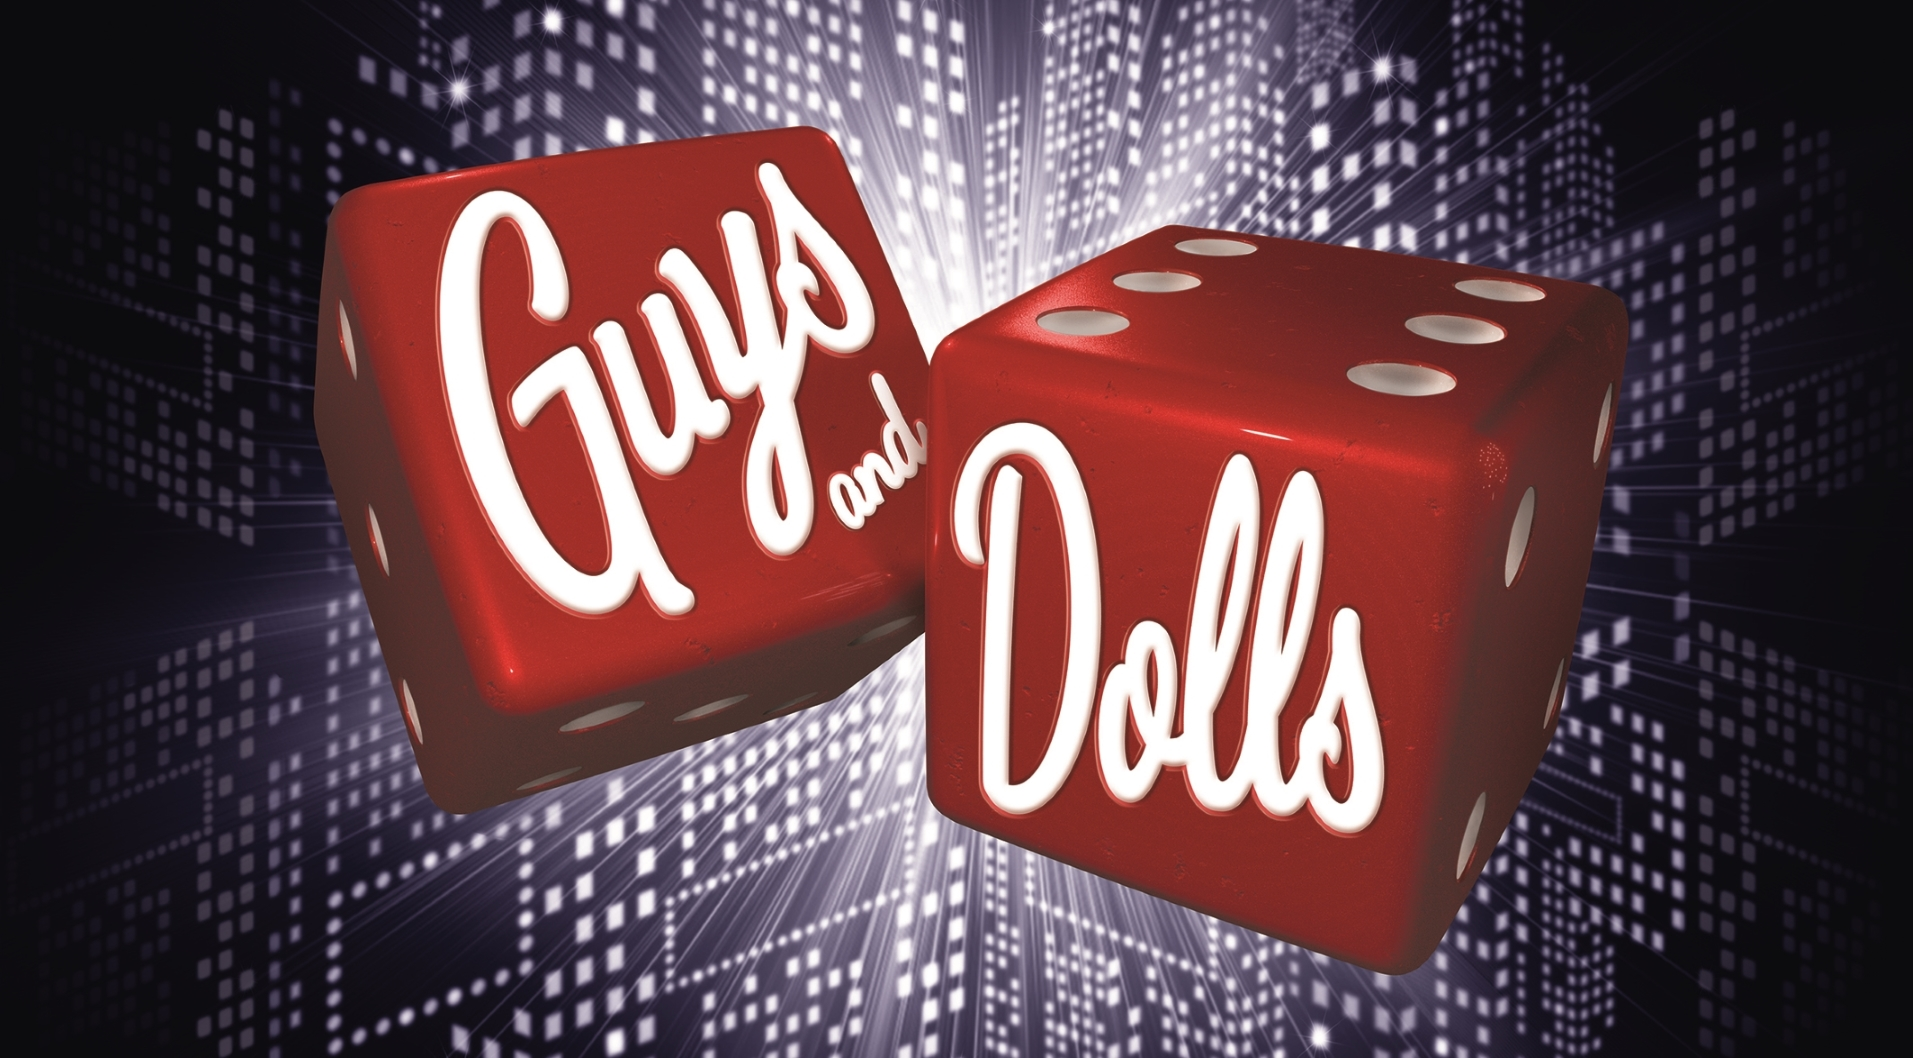 Guys and Dolls logo reduced1